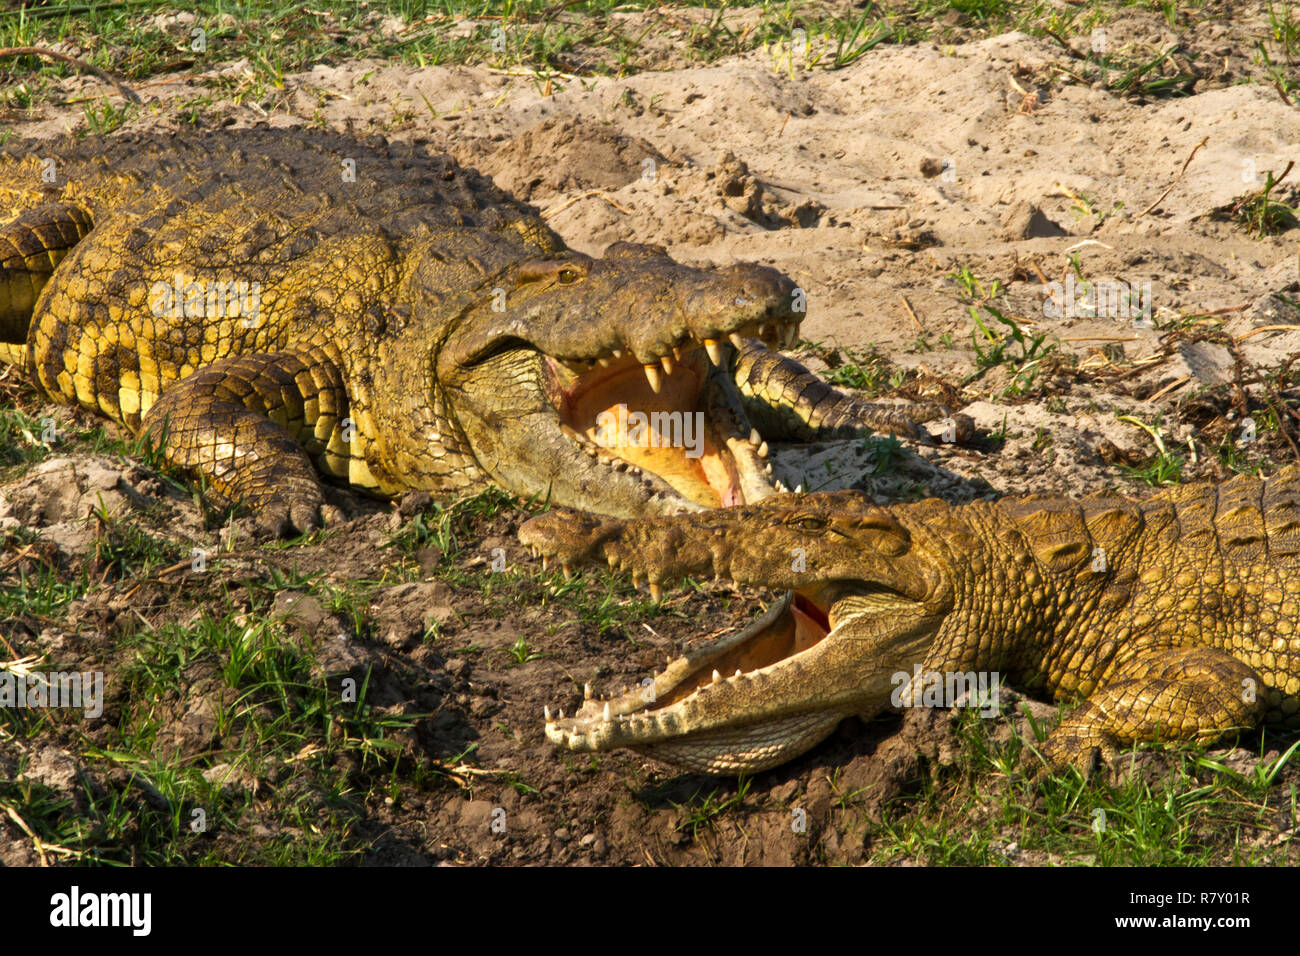 2 large female Crocodiles cool by letting the breeze flow over their moist gular membranes as the sit gaurding thir nest sites dug into the sand of th - Stock Image